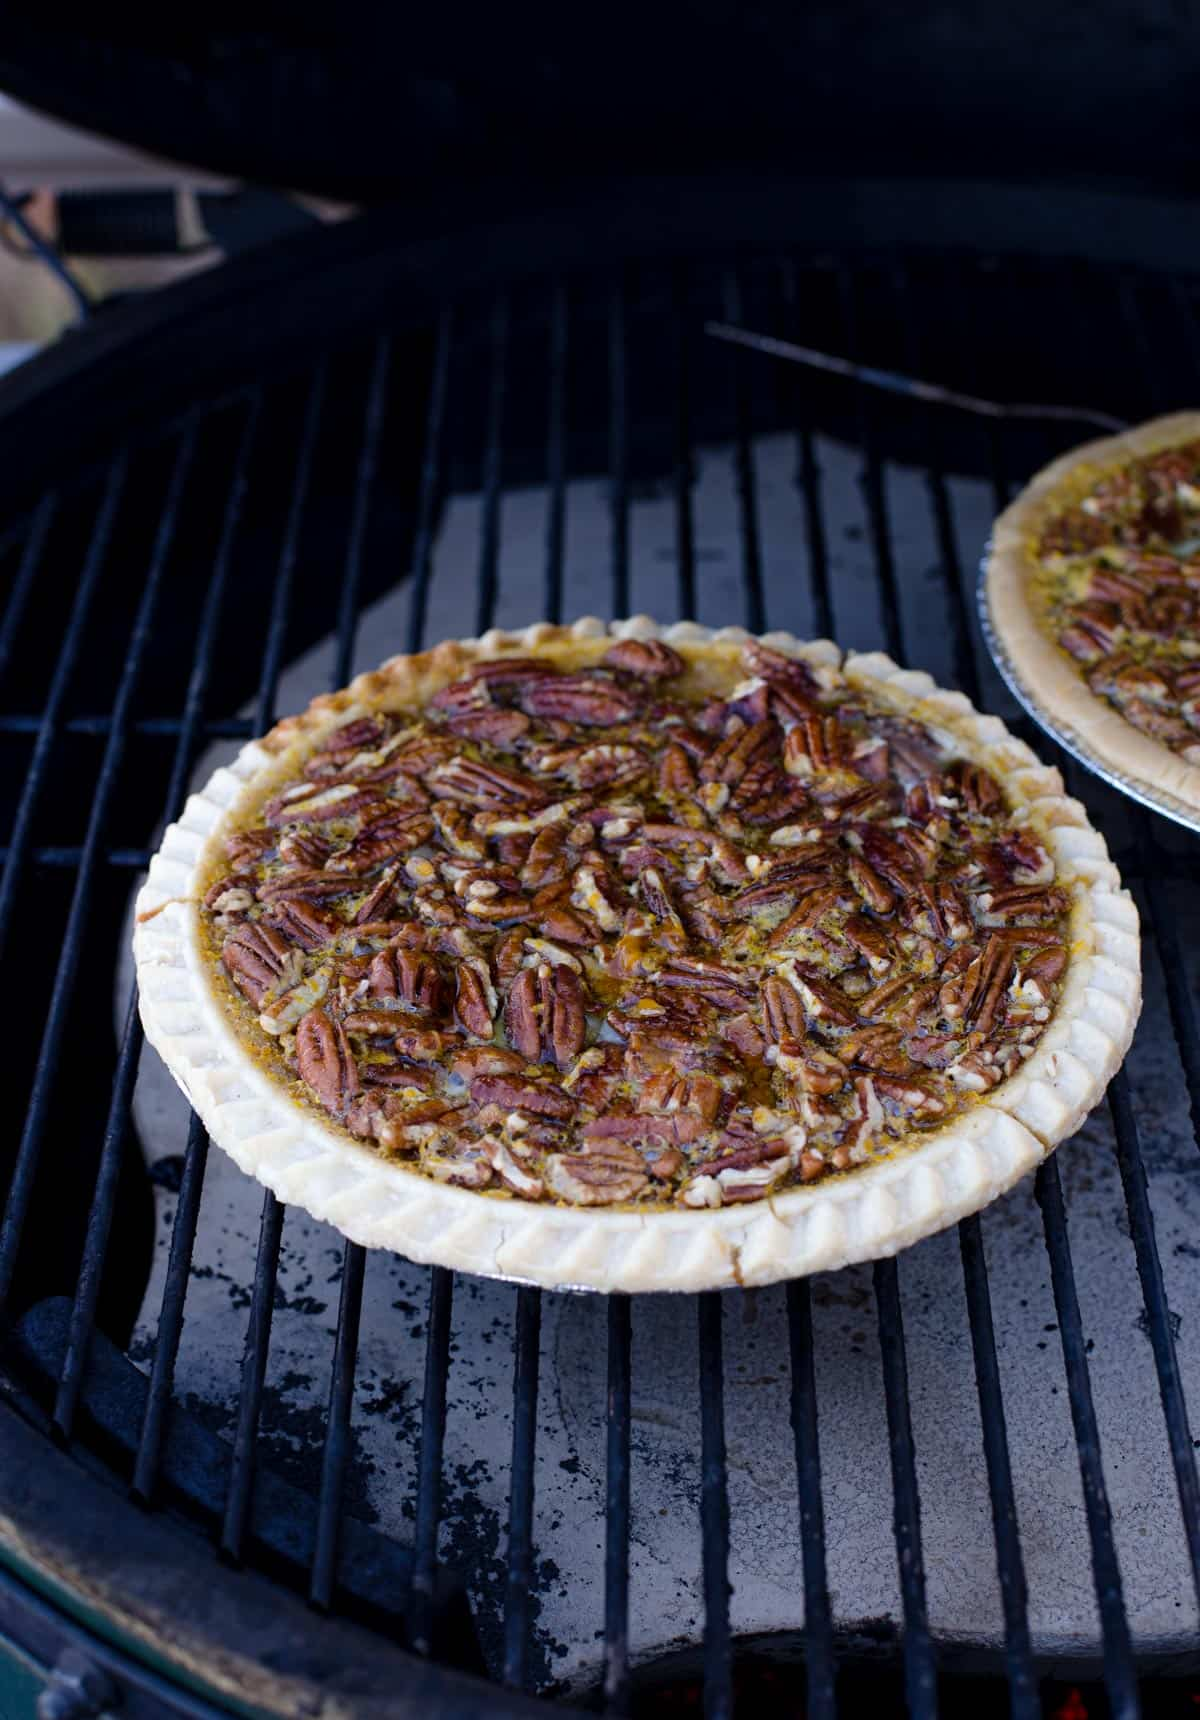 A pecan pie cooking on the grill